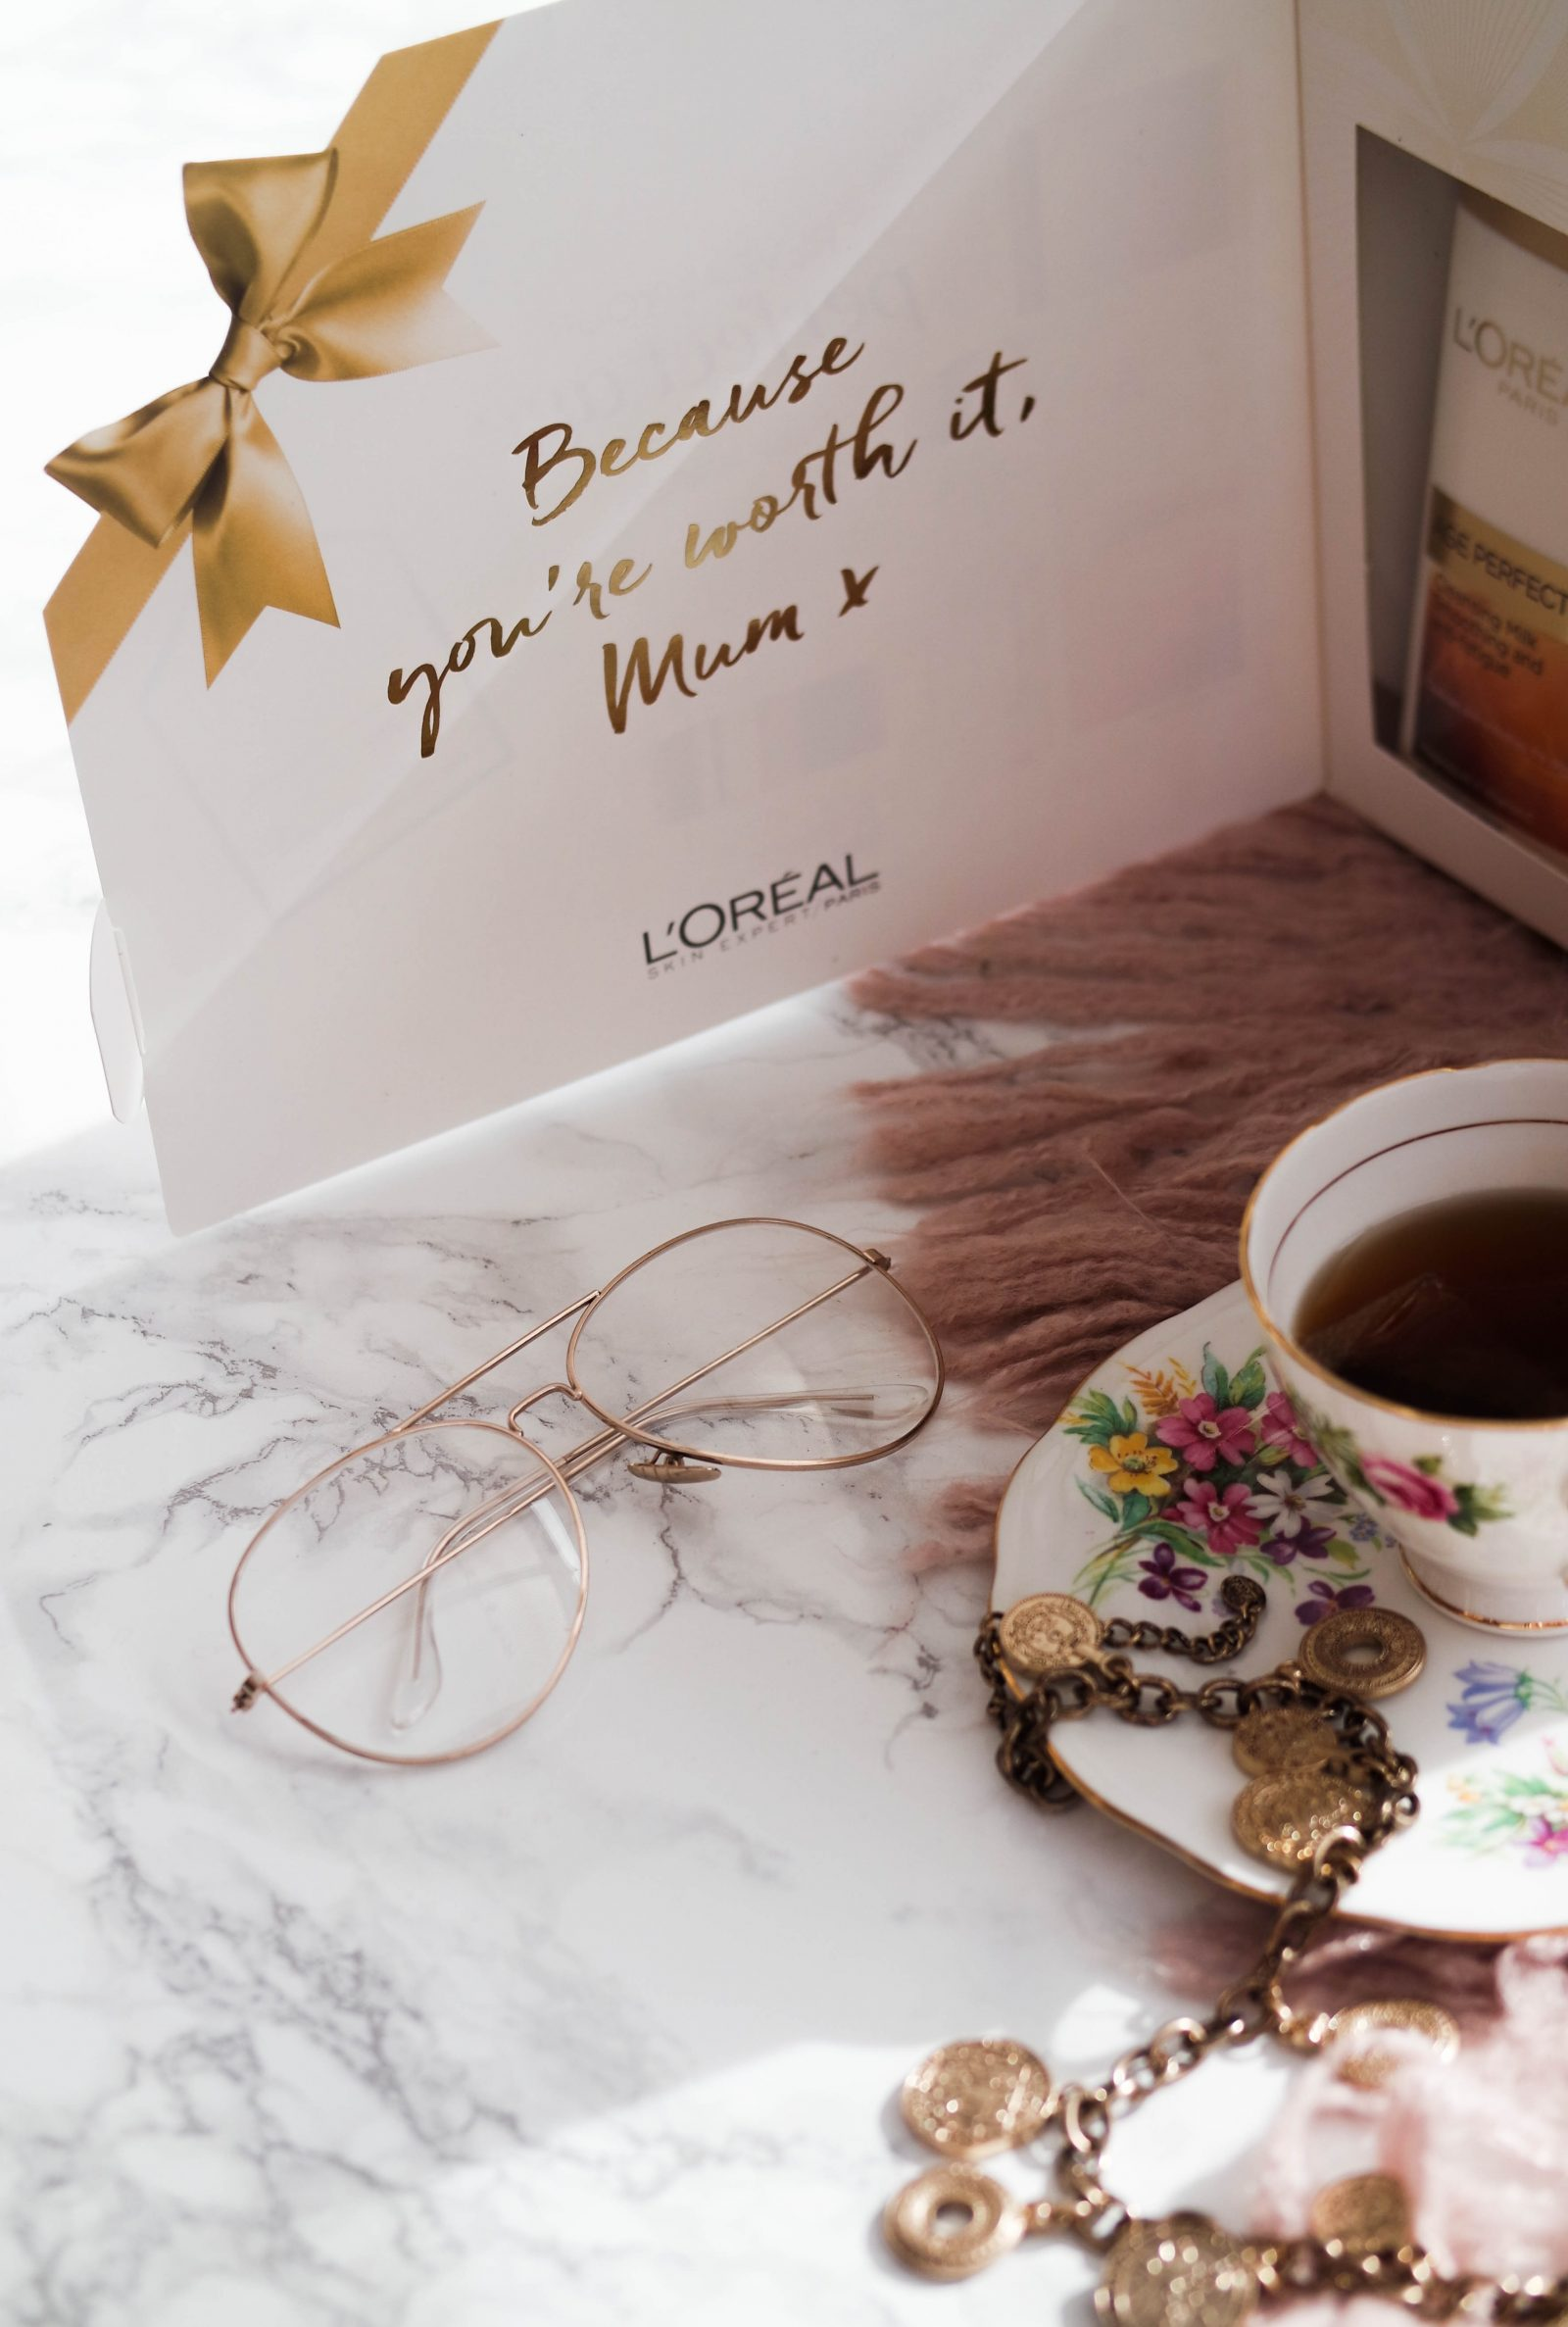 The Gift That Will Have Your Mum Glowing | L'oreal Paris | Ad